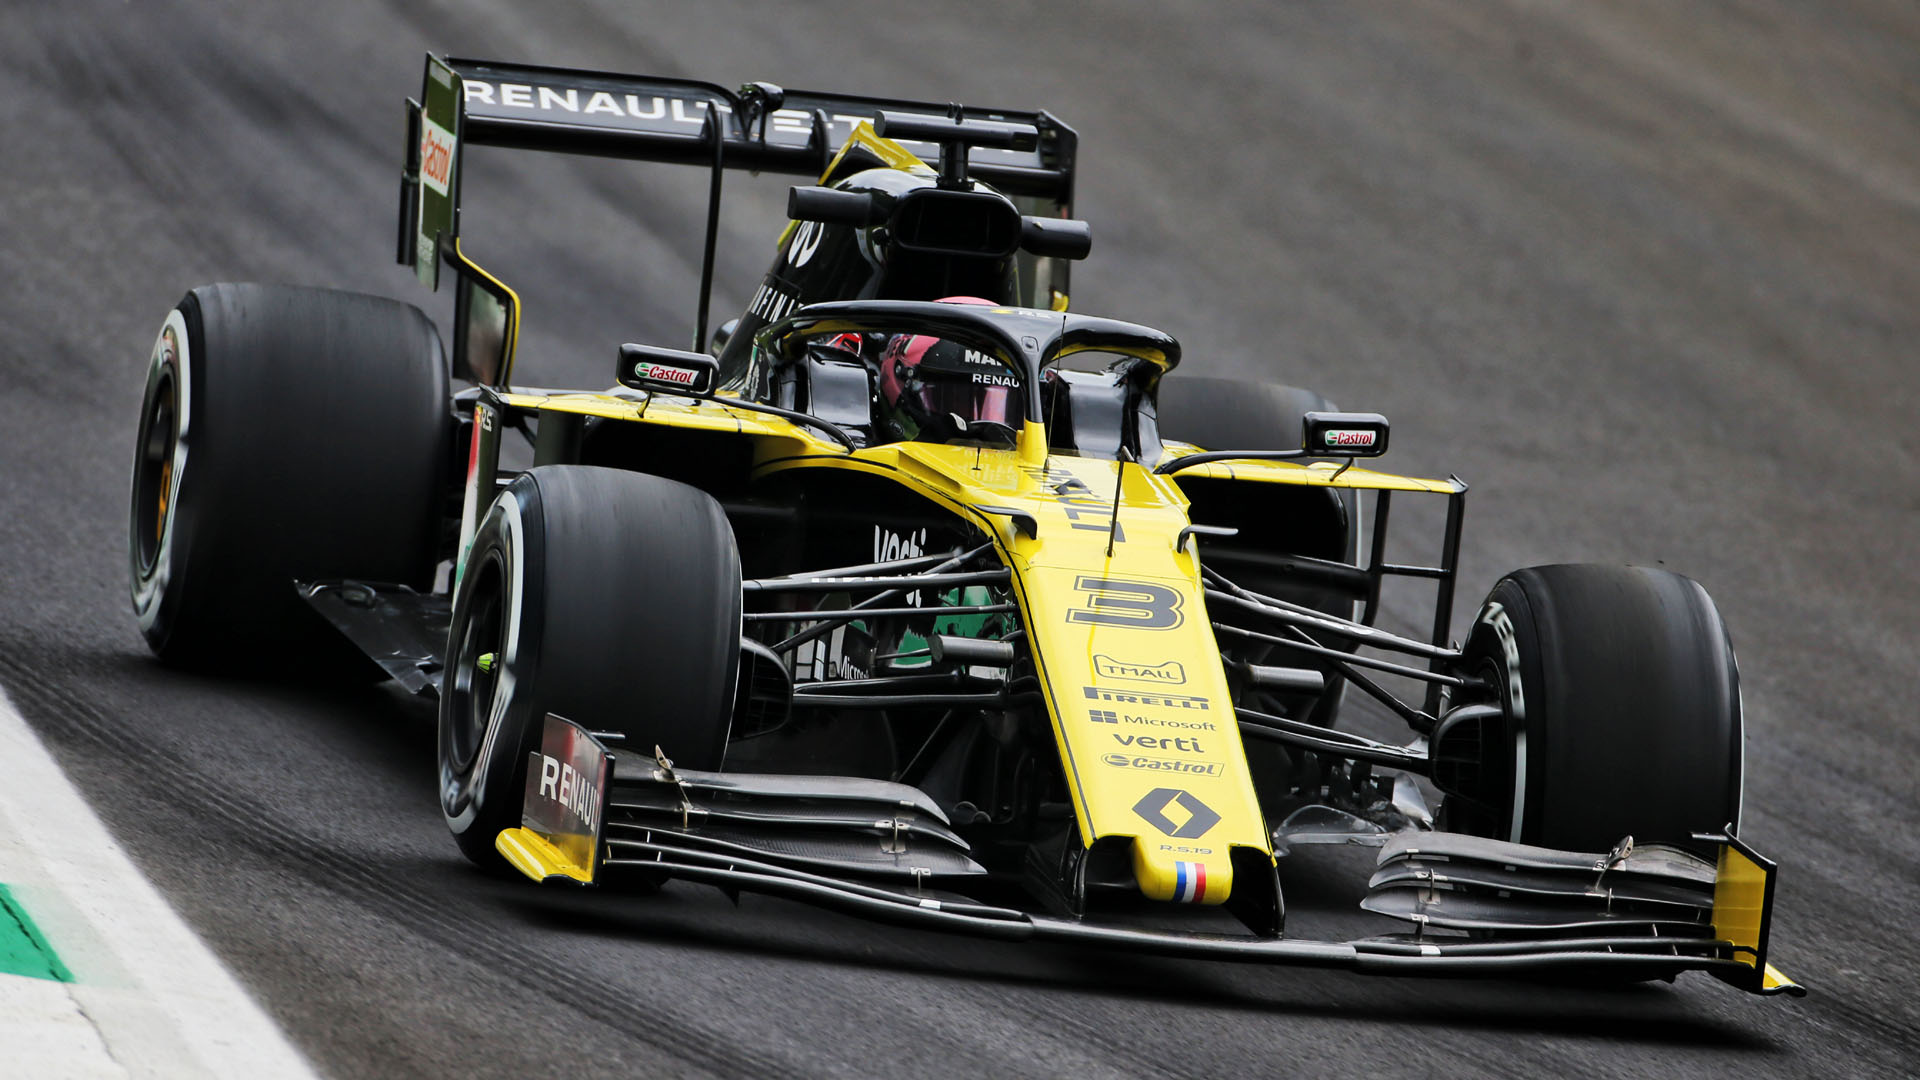 Ricciardo: Renault's surprise Monza pace 'easy' to extract